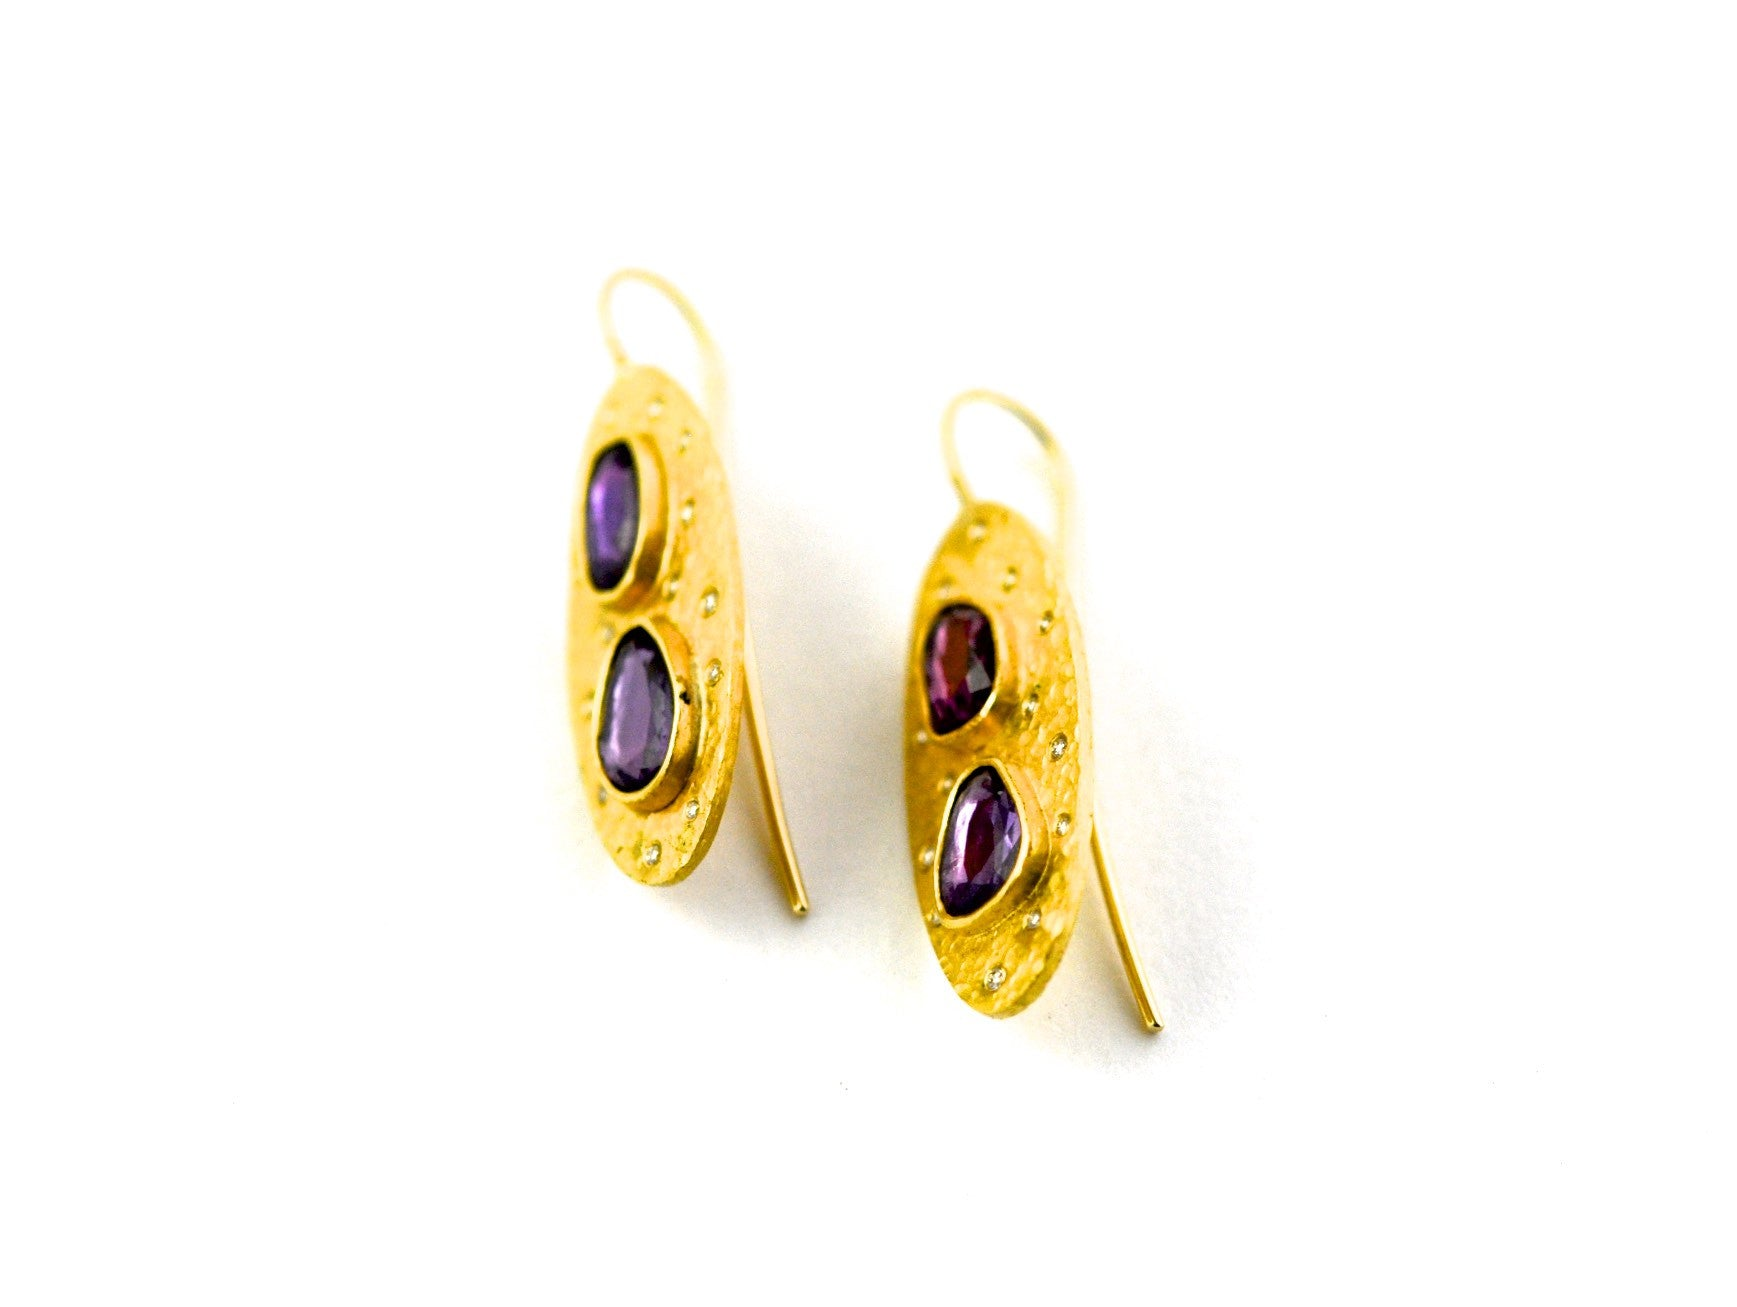 earrings / gold hammered 22k + rose cut sapphires